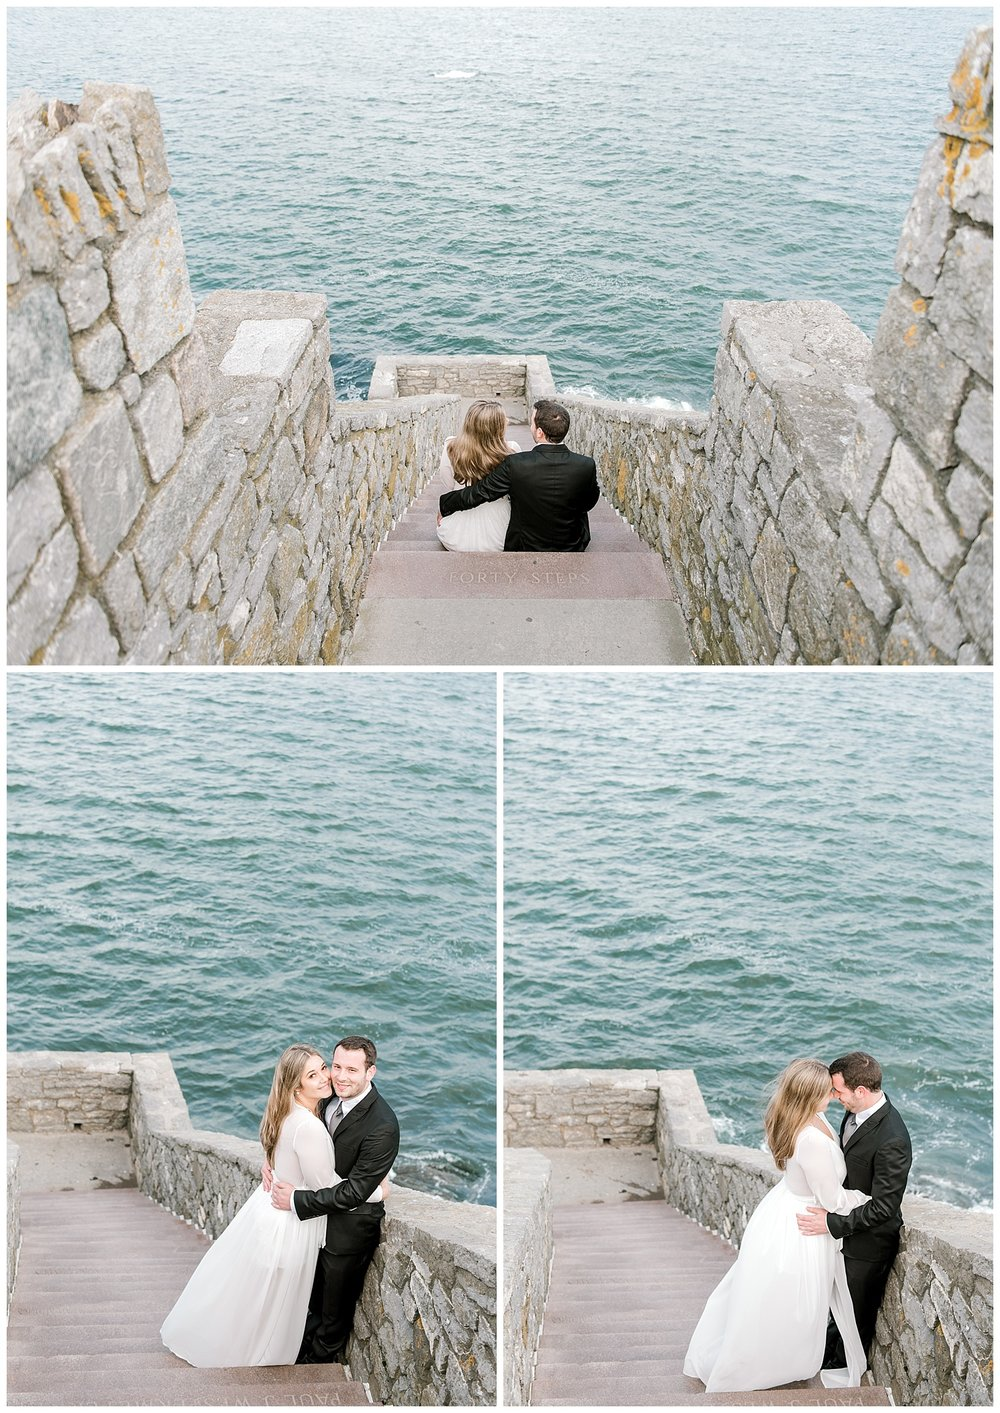 September24-newport-rhode-island-cliffwalk-engagement-photography-1.jpg